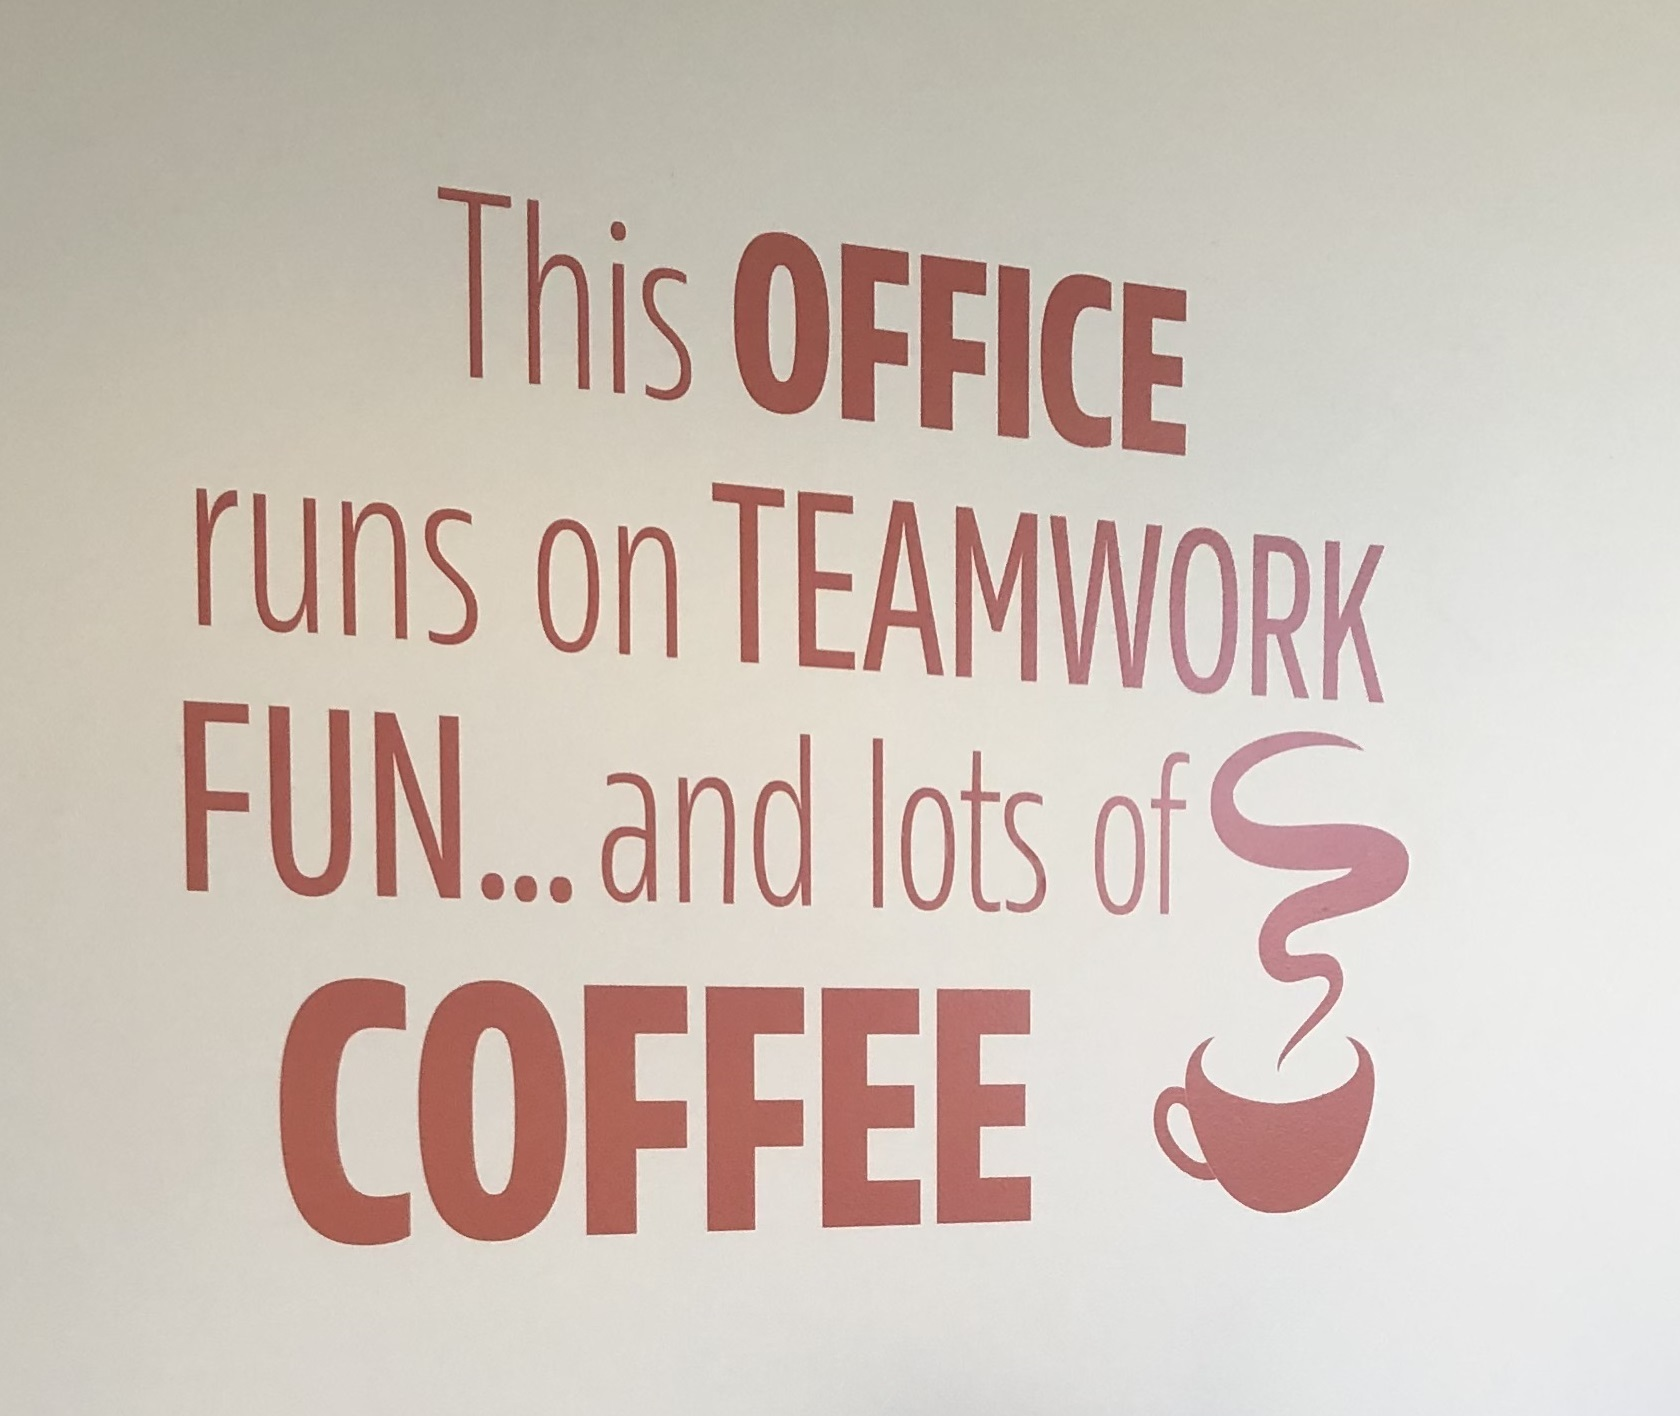 Highlight famous quotes, mission statements or company credos with inspirational quotes signs as part of your office sign package.